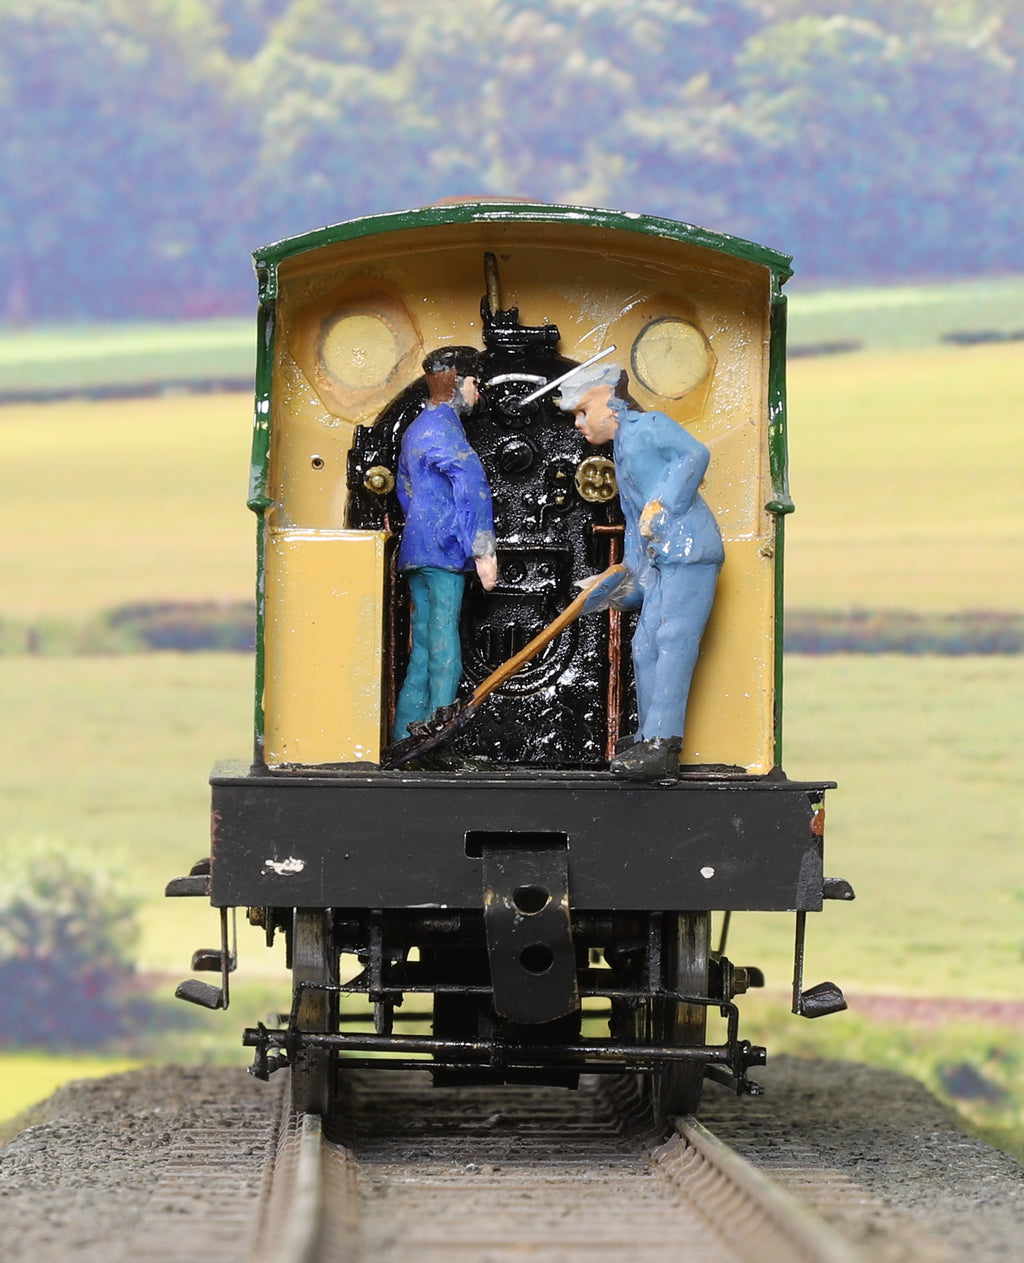 7mm Finescale O Gauge Kit Built SE&CR Green 0-6-0 Steam Locomotive '657'